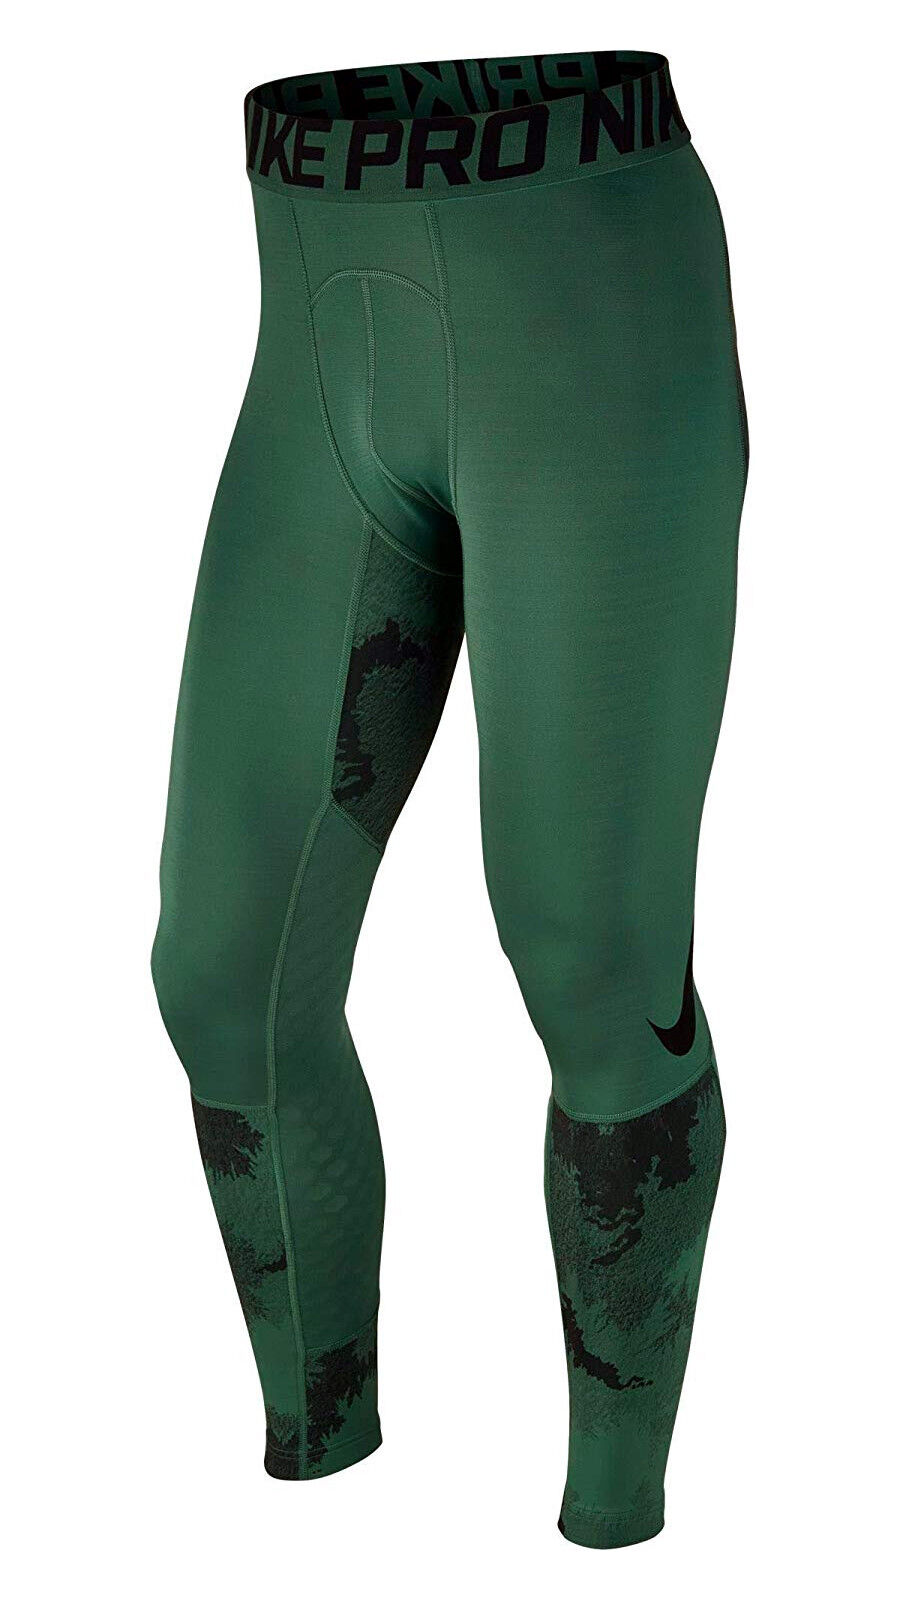 MENS CAMO NIKE PRO HYPERWARM COMPRESSION TRAINING BASE LAYER TIGHTS GREEN 801986